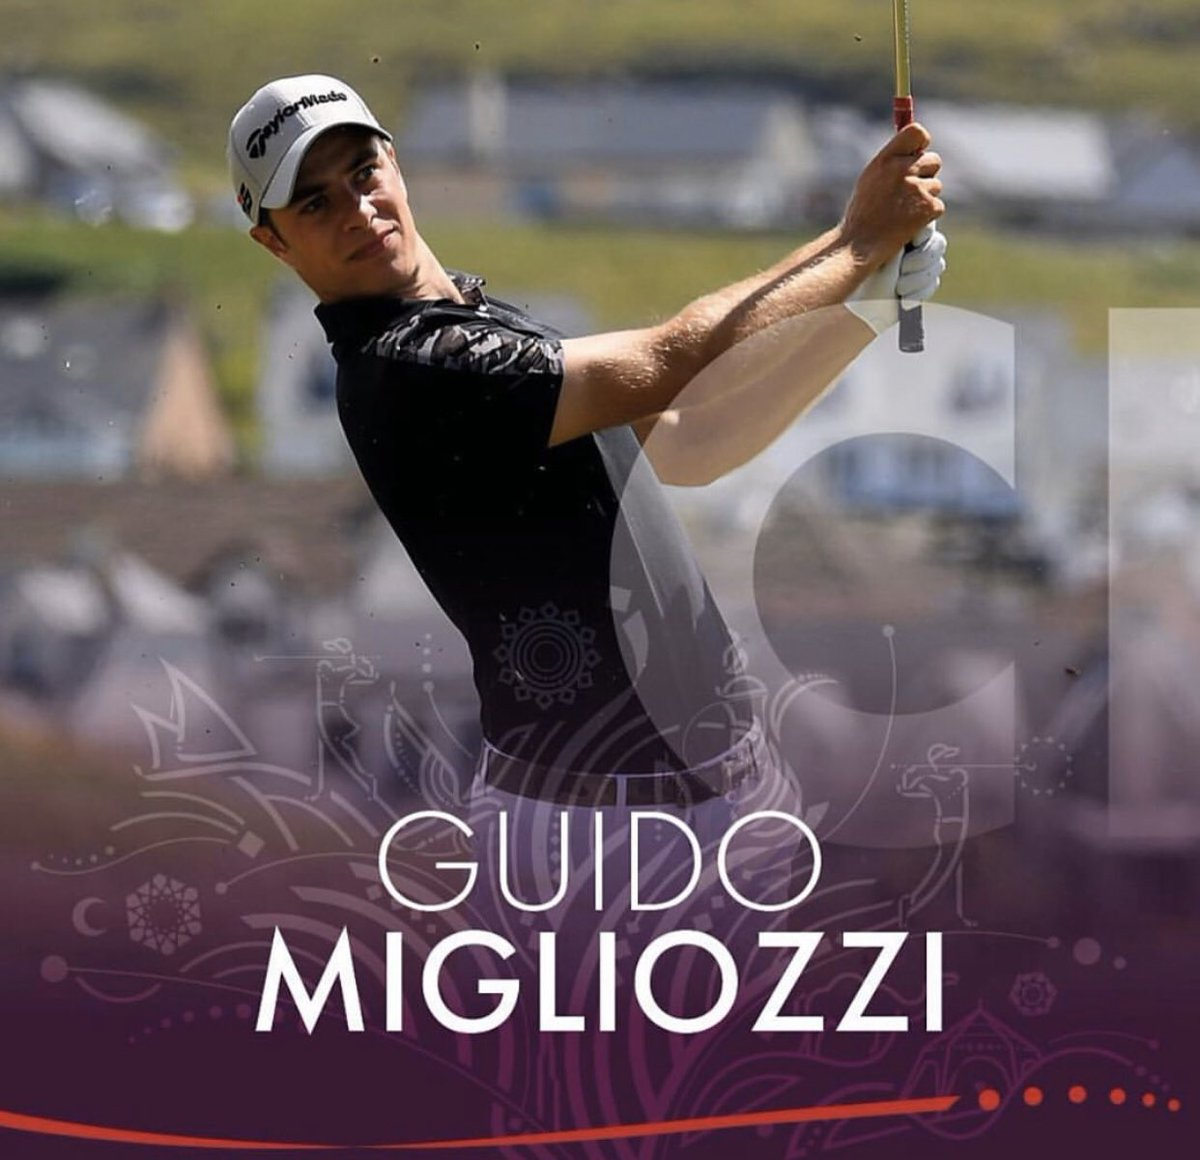 Delighted @modestgolf clients @guidomigliozzi & @BezChristiaan are confirmed to compete at the @OMEGAGolfDubai event in 2020. One of the best events on the @EuropeanTour. Roll on January. 🇦🇪